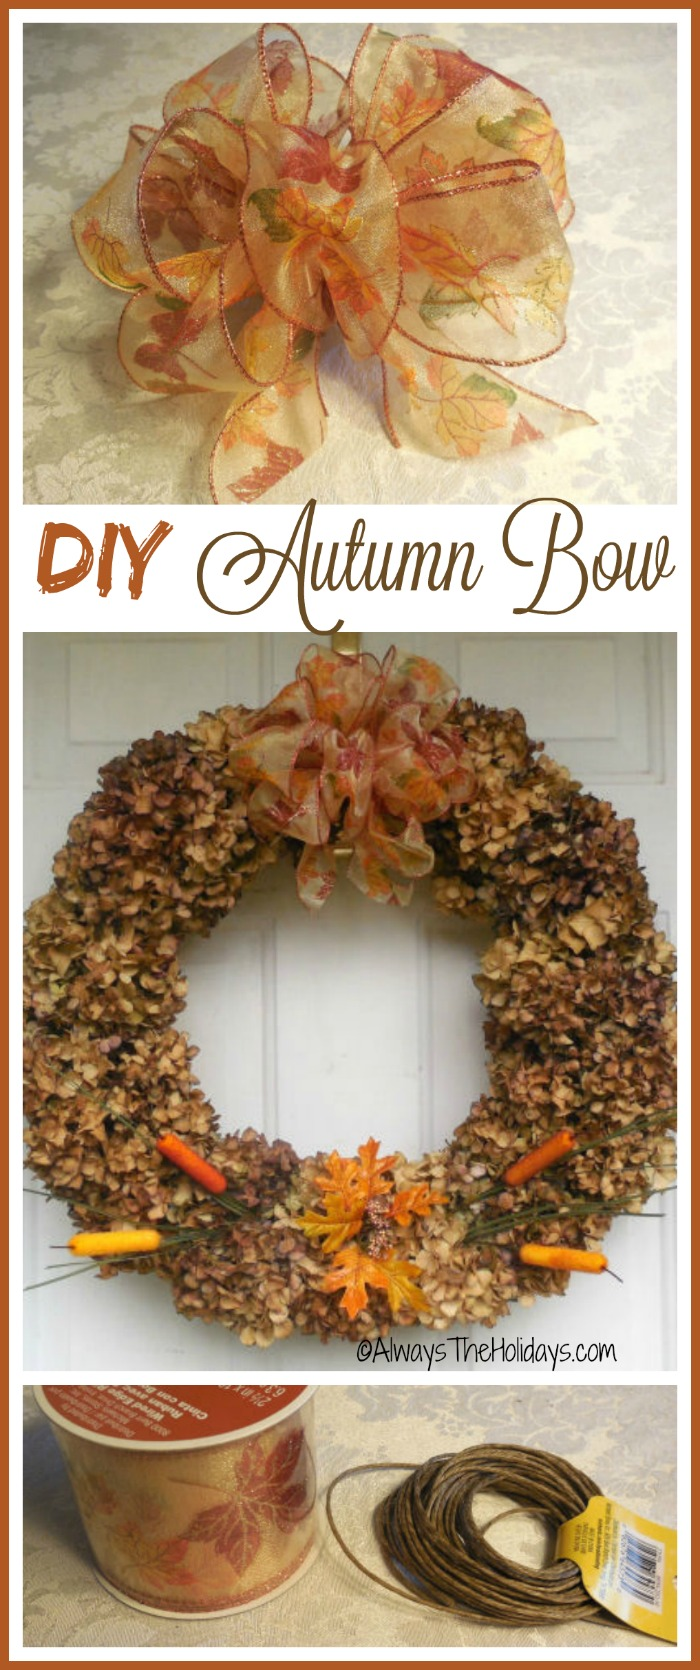 This DIY autumn bow is super easy to make and can dress up all your fall decor projects.  alwaystheholidays.com